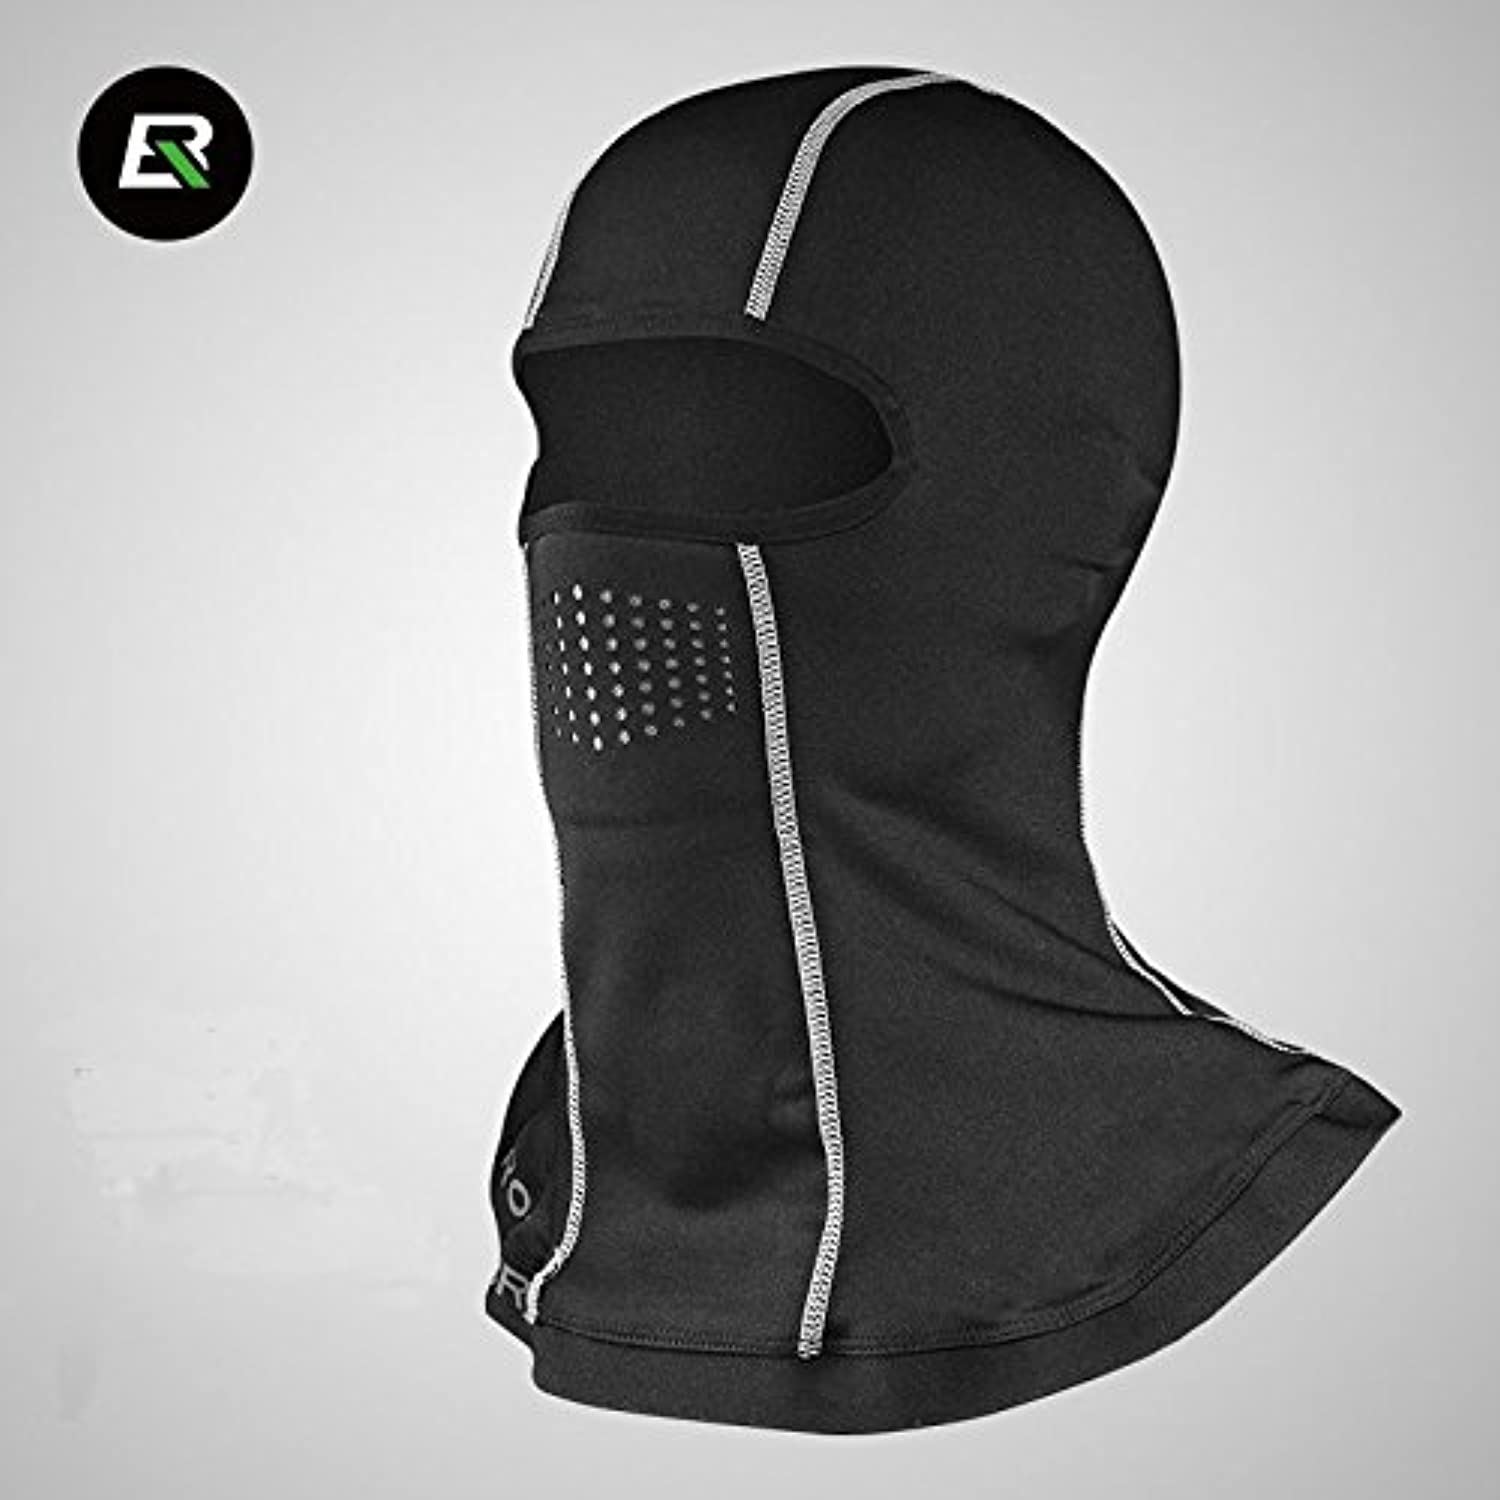 ROCKBROS (lock bredh) full-face mask filters with predection against the cold wind black LF7124